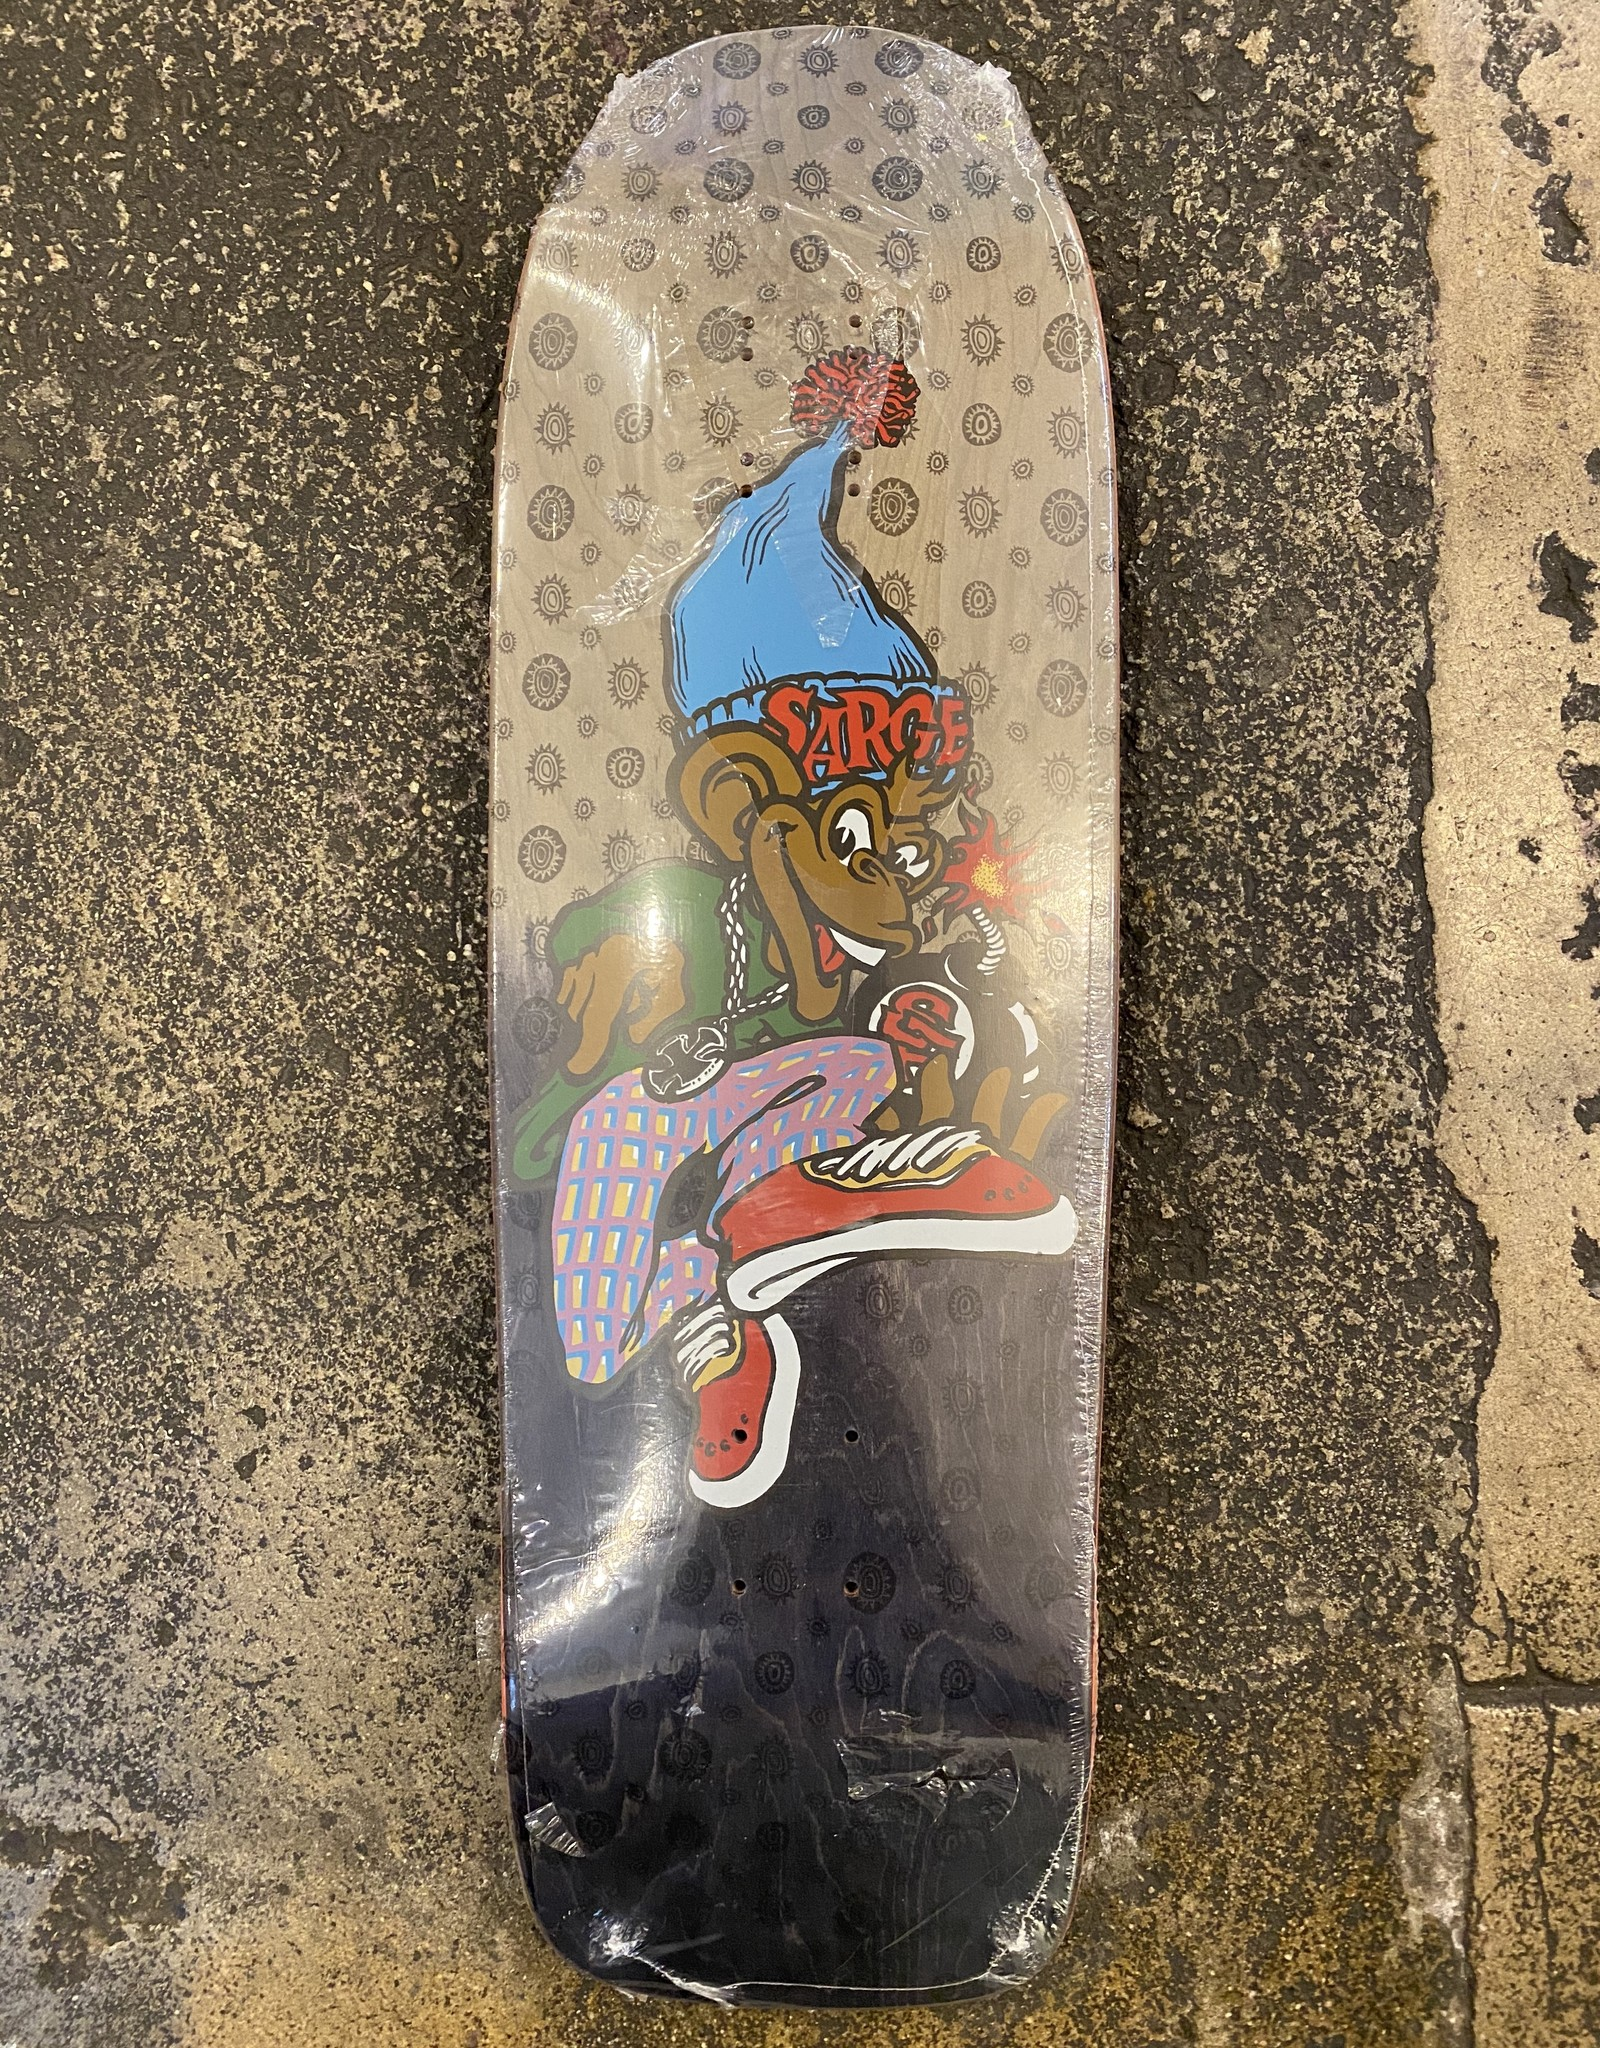 THE NEW DEAL NEW DEAL SARGE DANNY DARGENT (SCREEN PRINT) DECK - 9.625